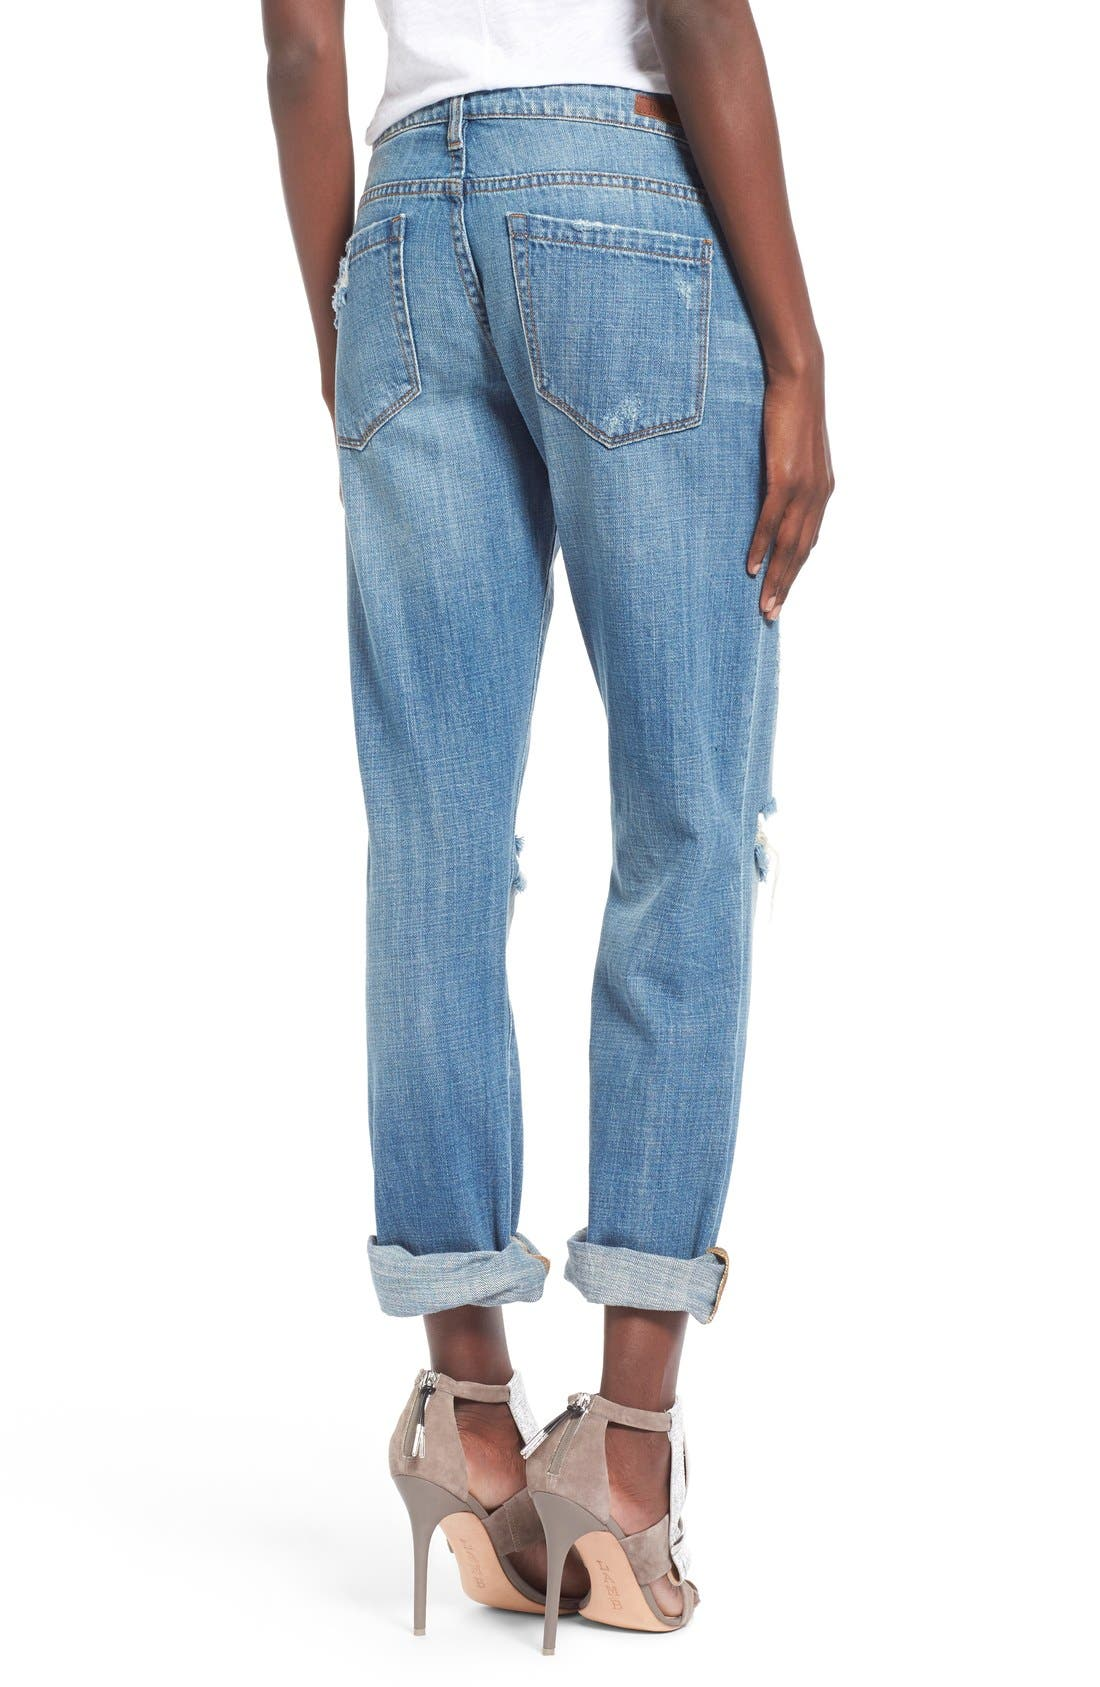 'Meant to Be' High Rise Distressed Boyfriend Jeans,                             Alternate thumbnail 3, color,                             Tomboy